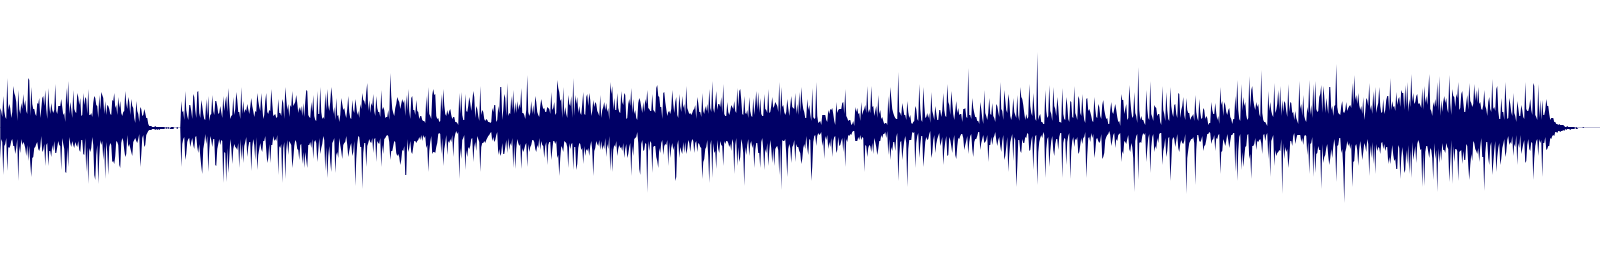 waveform of track #131747